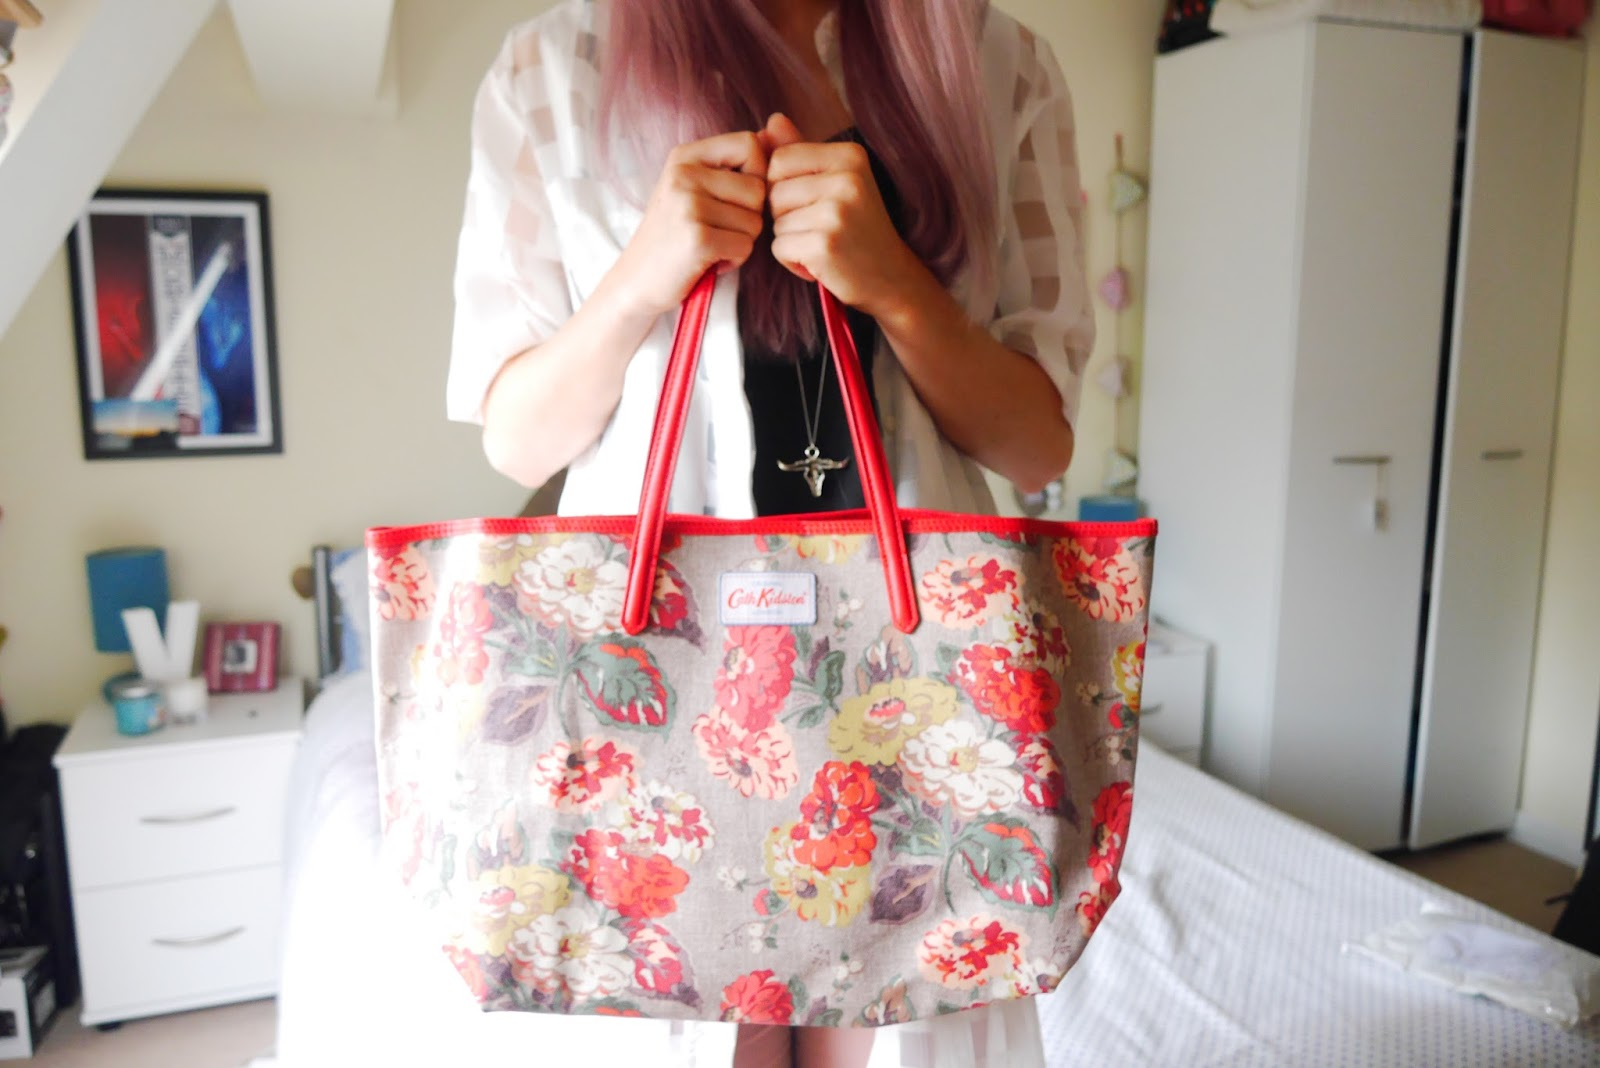 The Cath Kidston Tote - Whats in my bag?! - Inthefrow